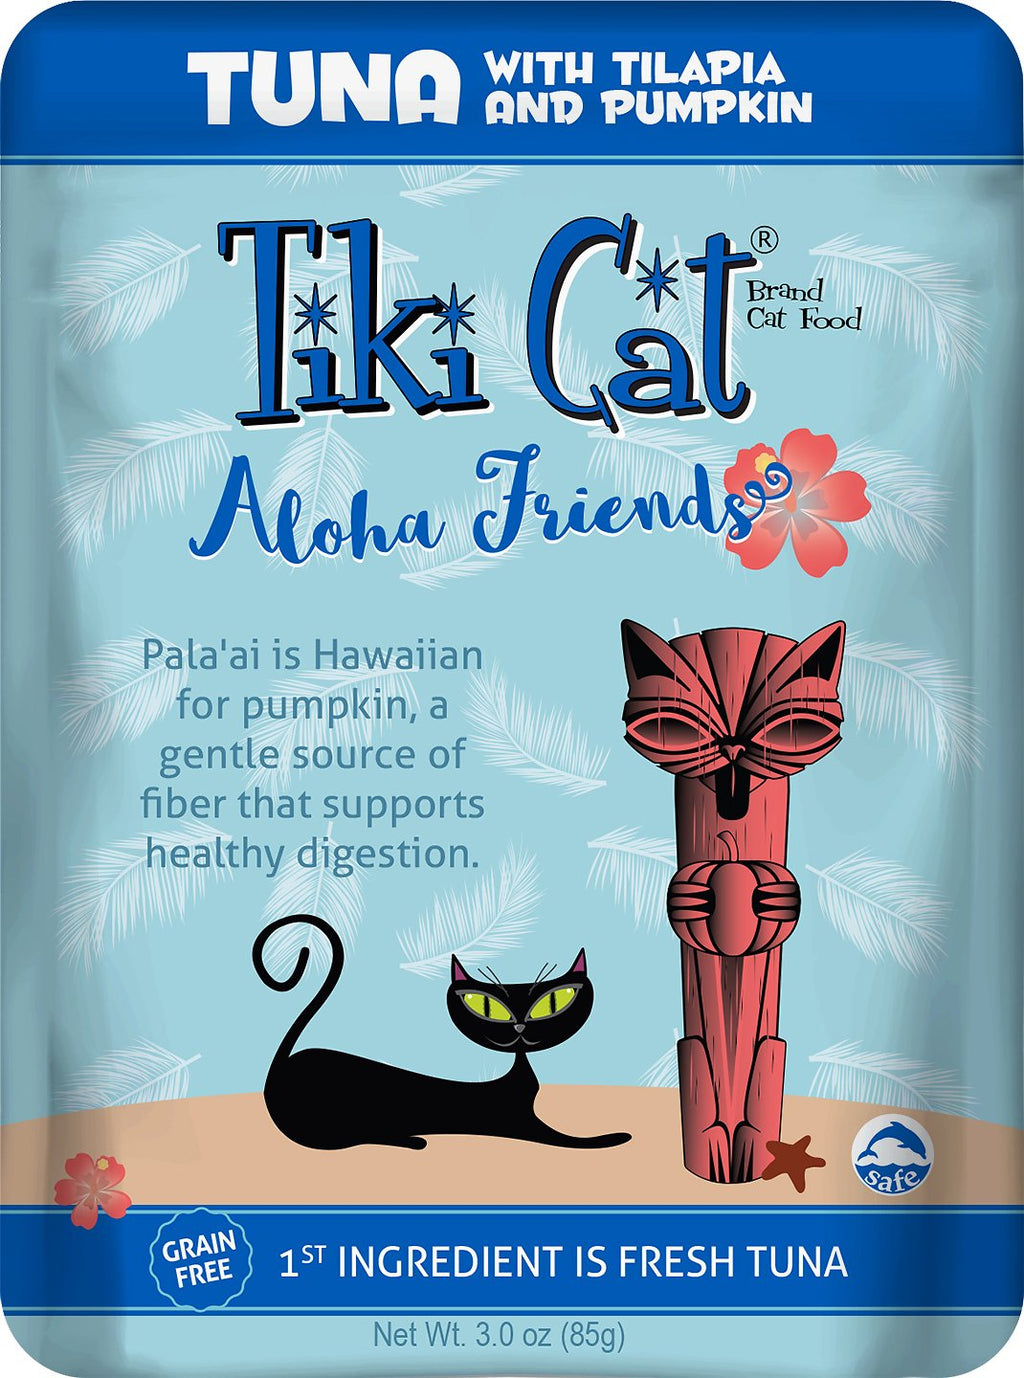 Tiki Cat - Aloha Friends Pouches - Tuna with Tilapia and Pumpkin